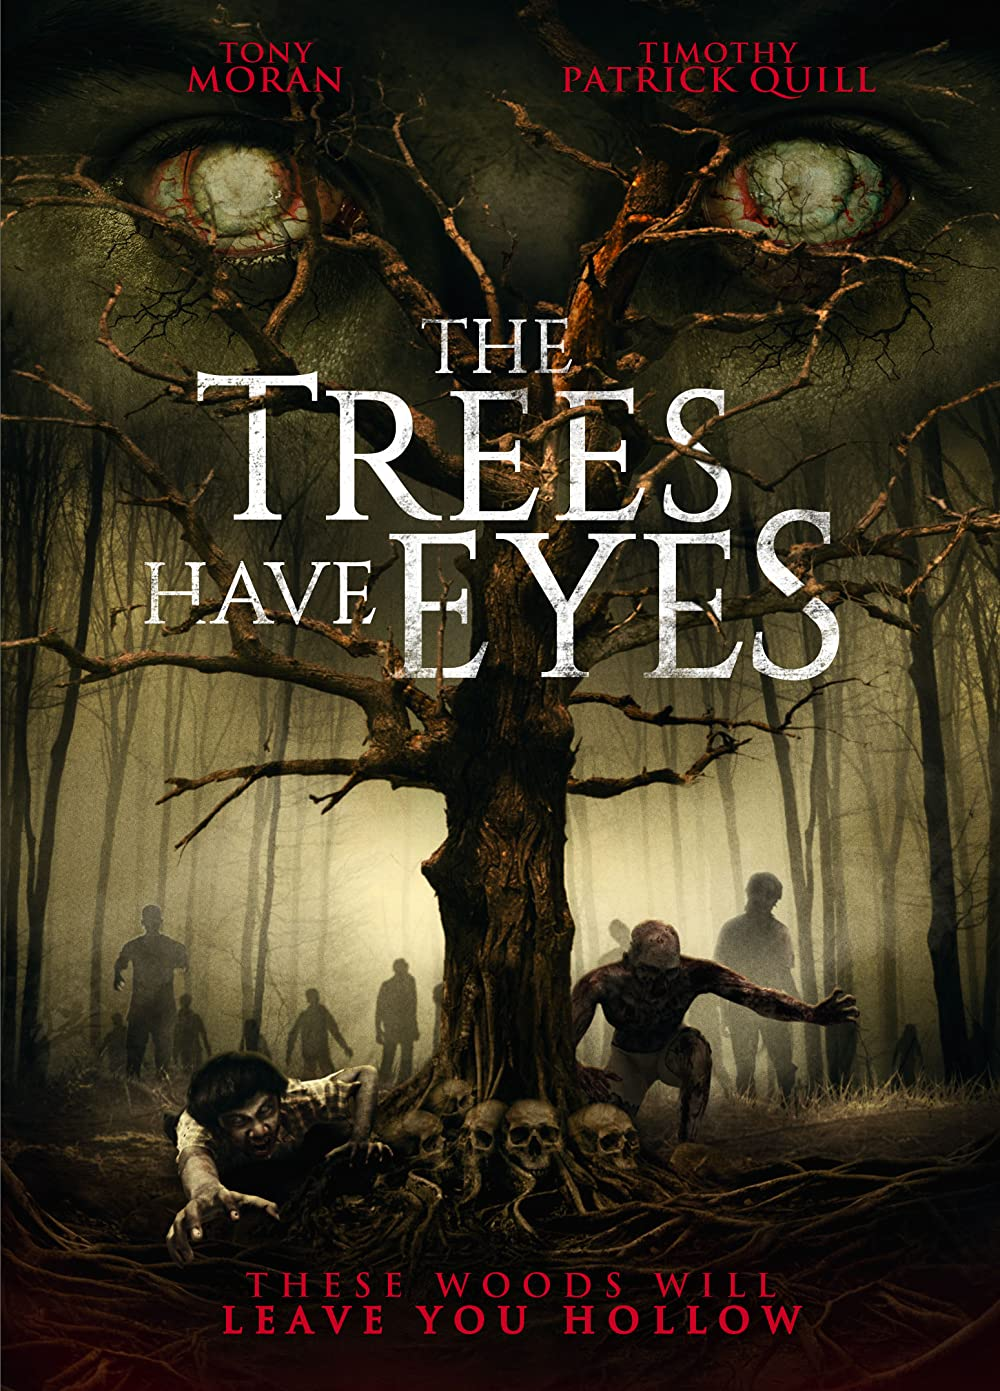 18+ The Trees Have Eyes 2020 Hindi Dual Audio 480p UNRATED DVDRip 300MB x264 AAC